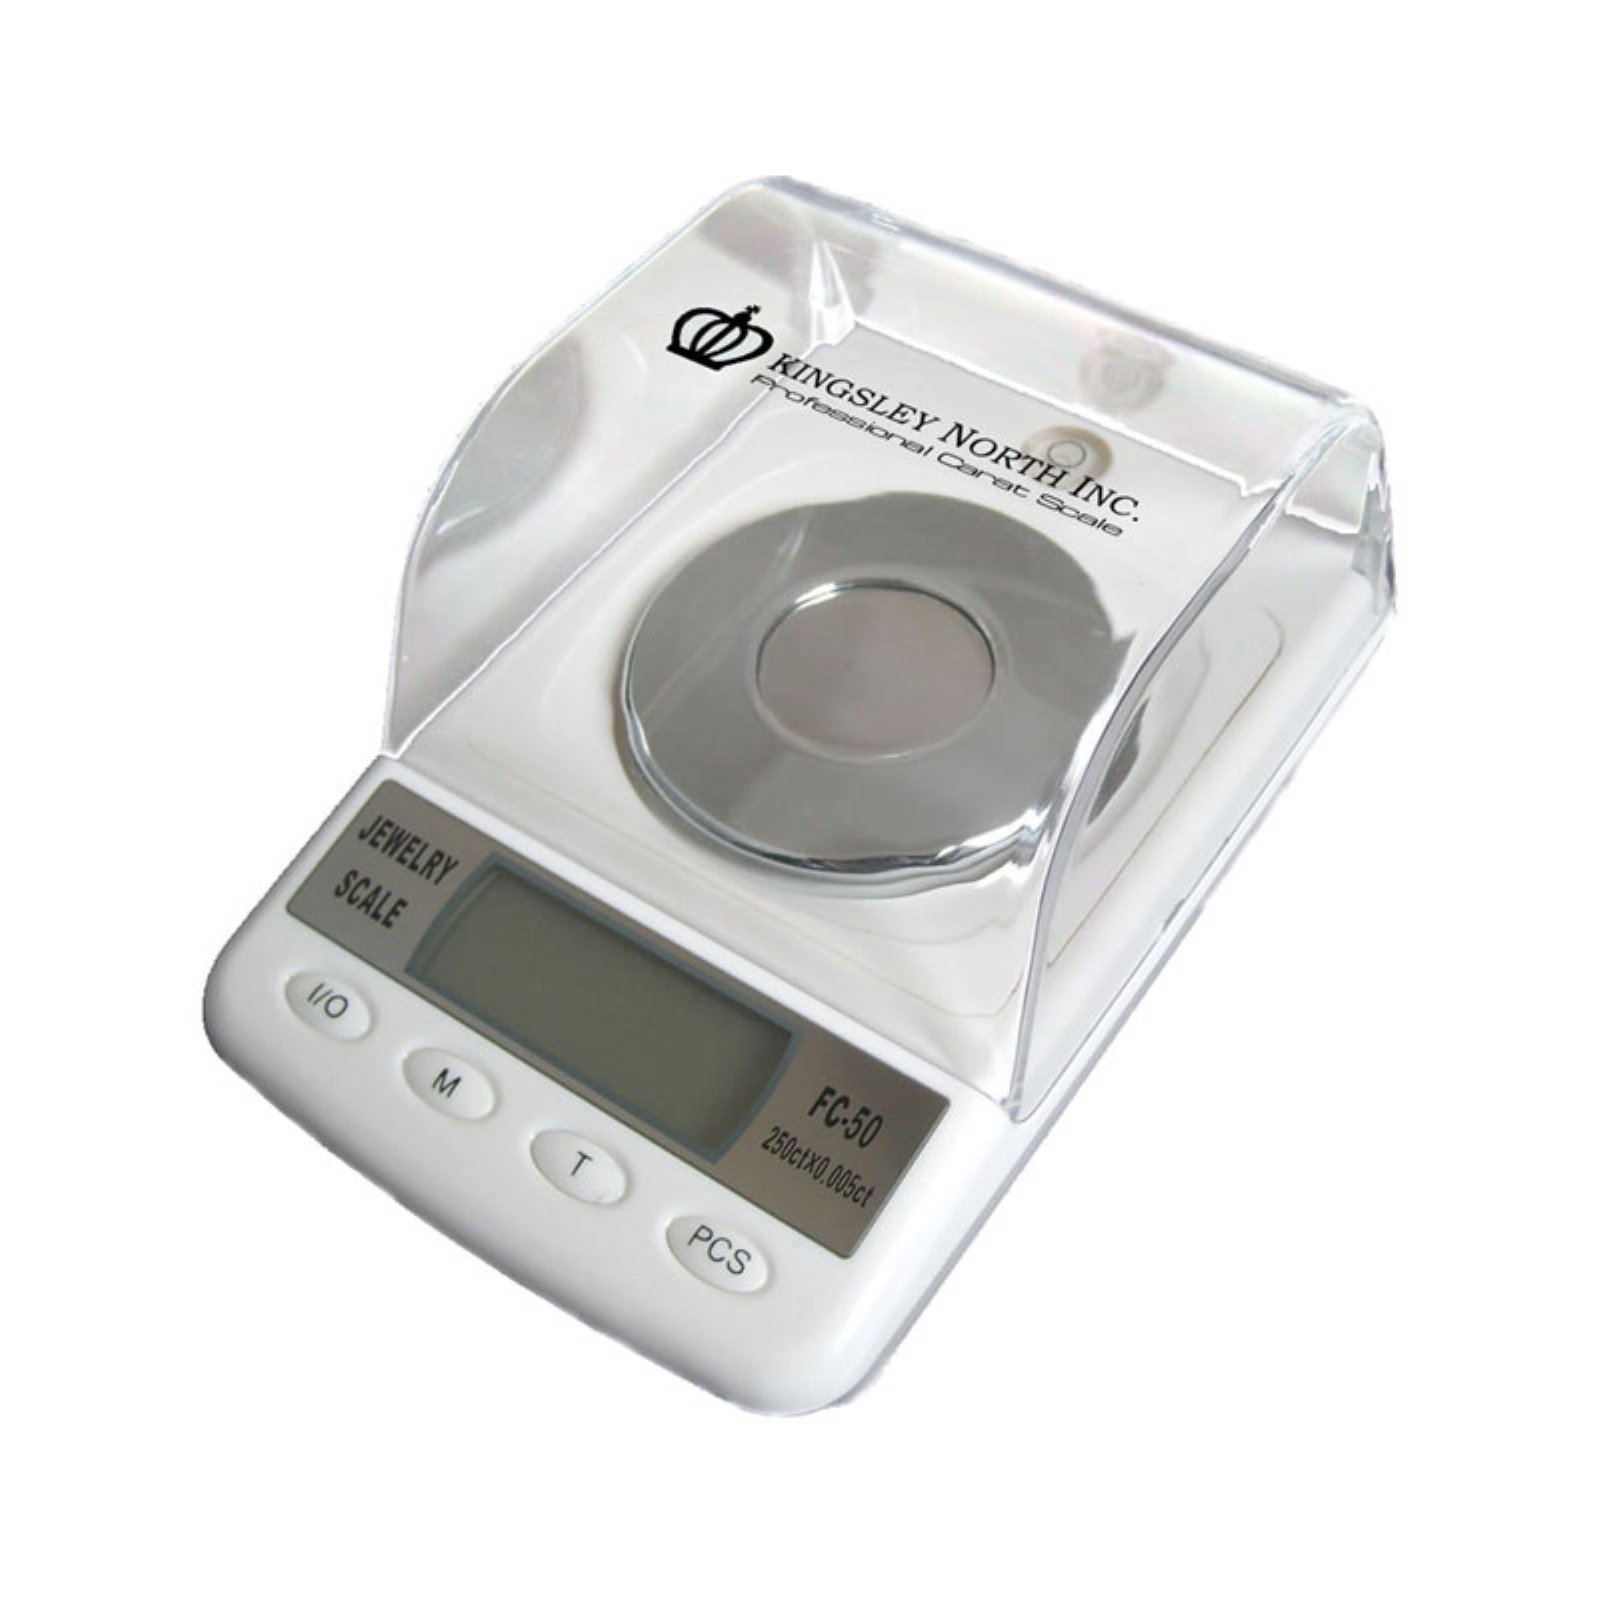 Kingsley North 250ct Carat Scale